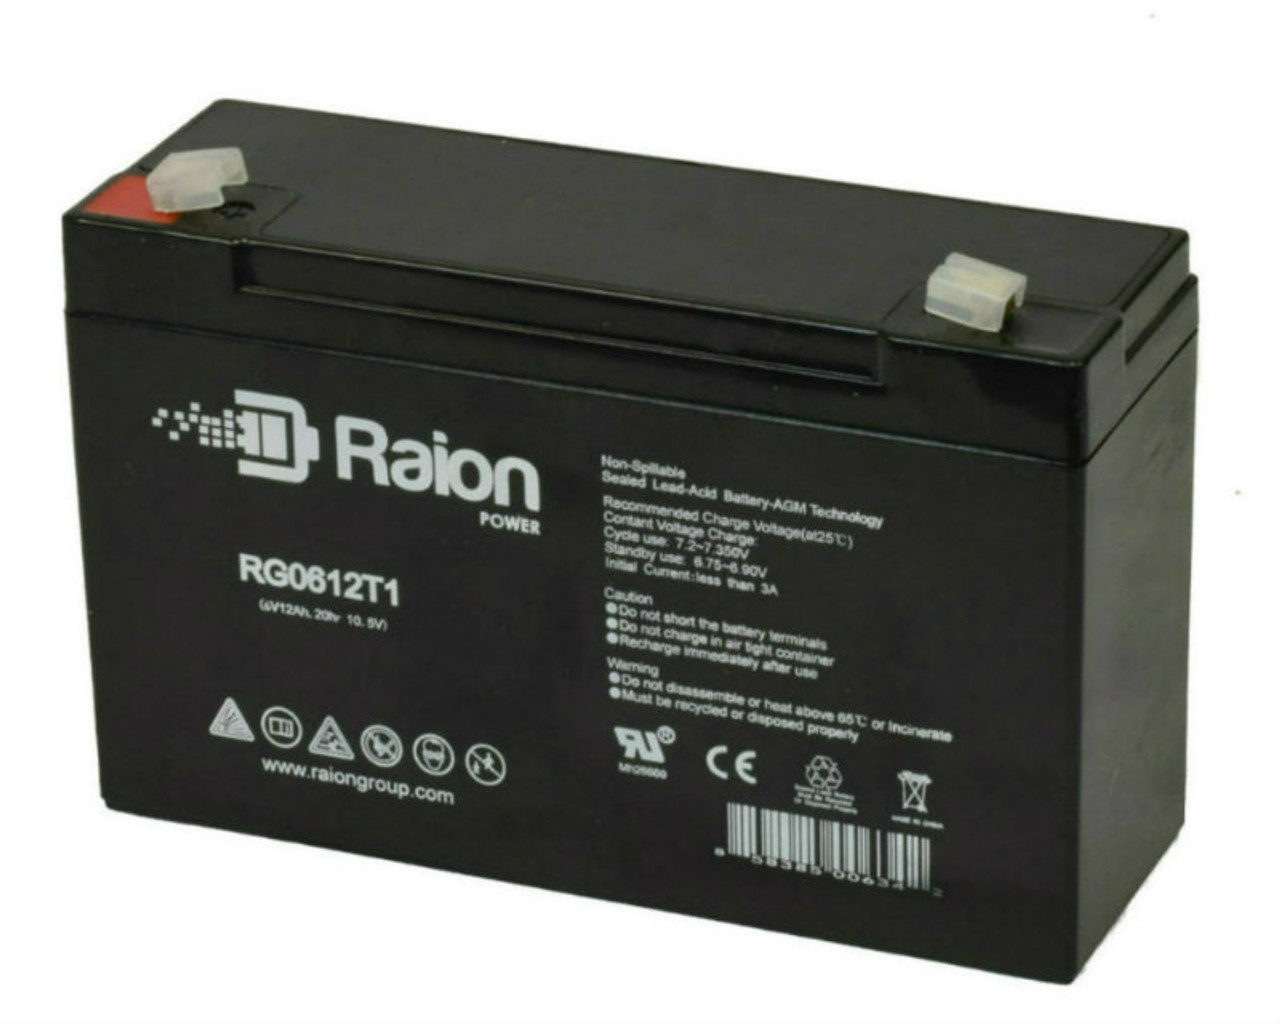 Raion Power RG06120T1 Replacement Battery Pack for Chloride D2MF50 emergency light